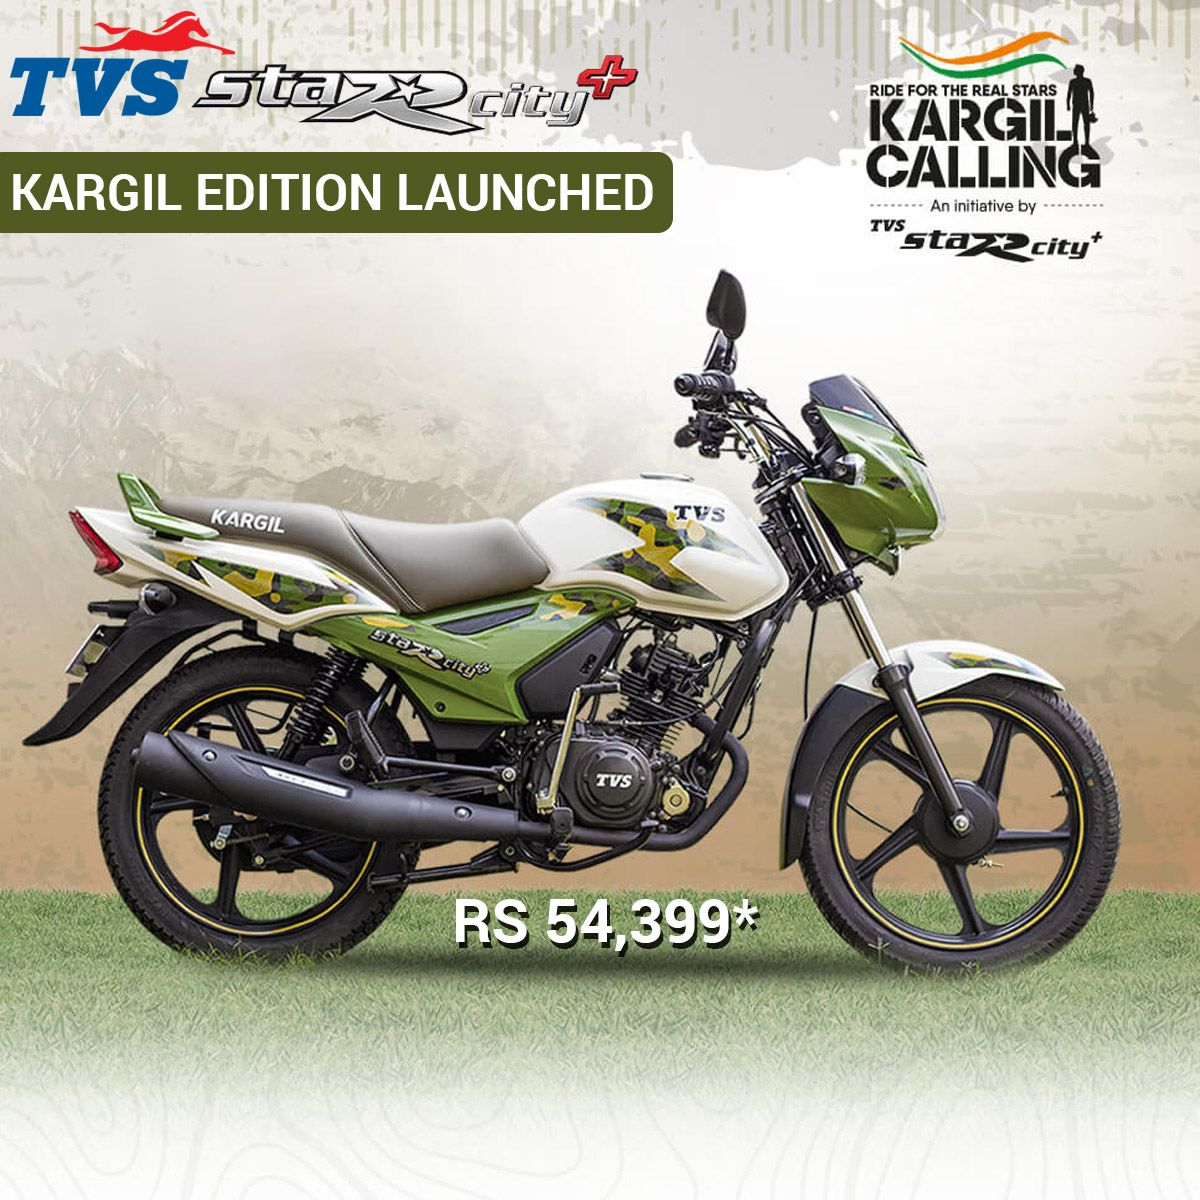 Tvs Has Launched The Star City Plus Kargil Edition In India At Rs